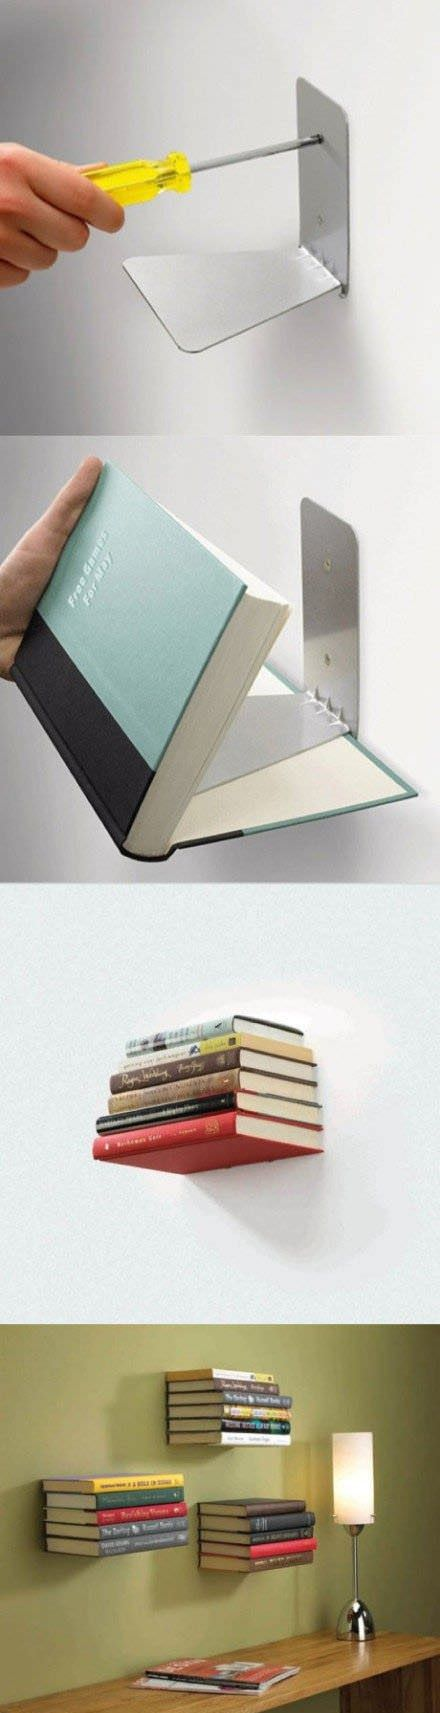 DIY - Great Creative Ideas to do Yourself!